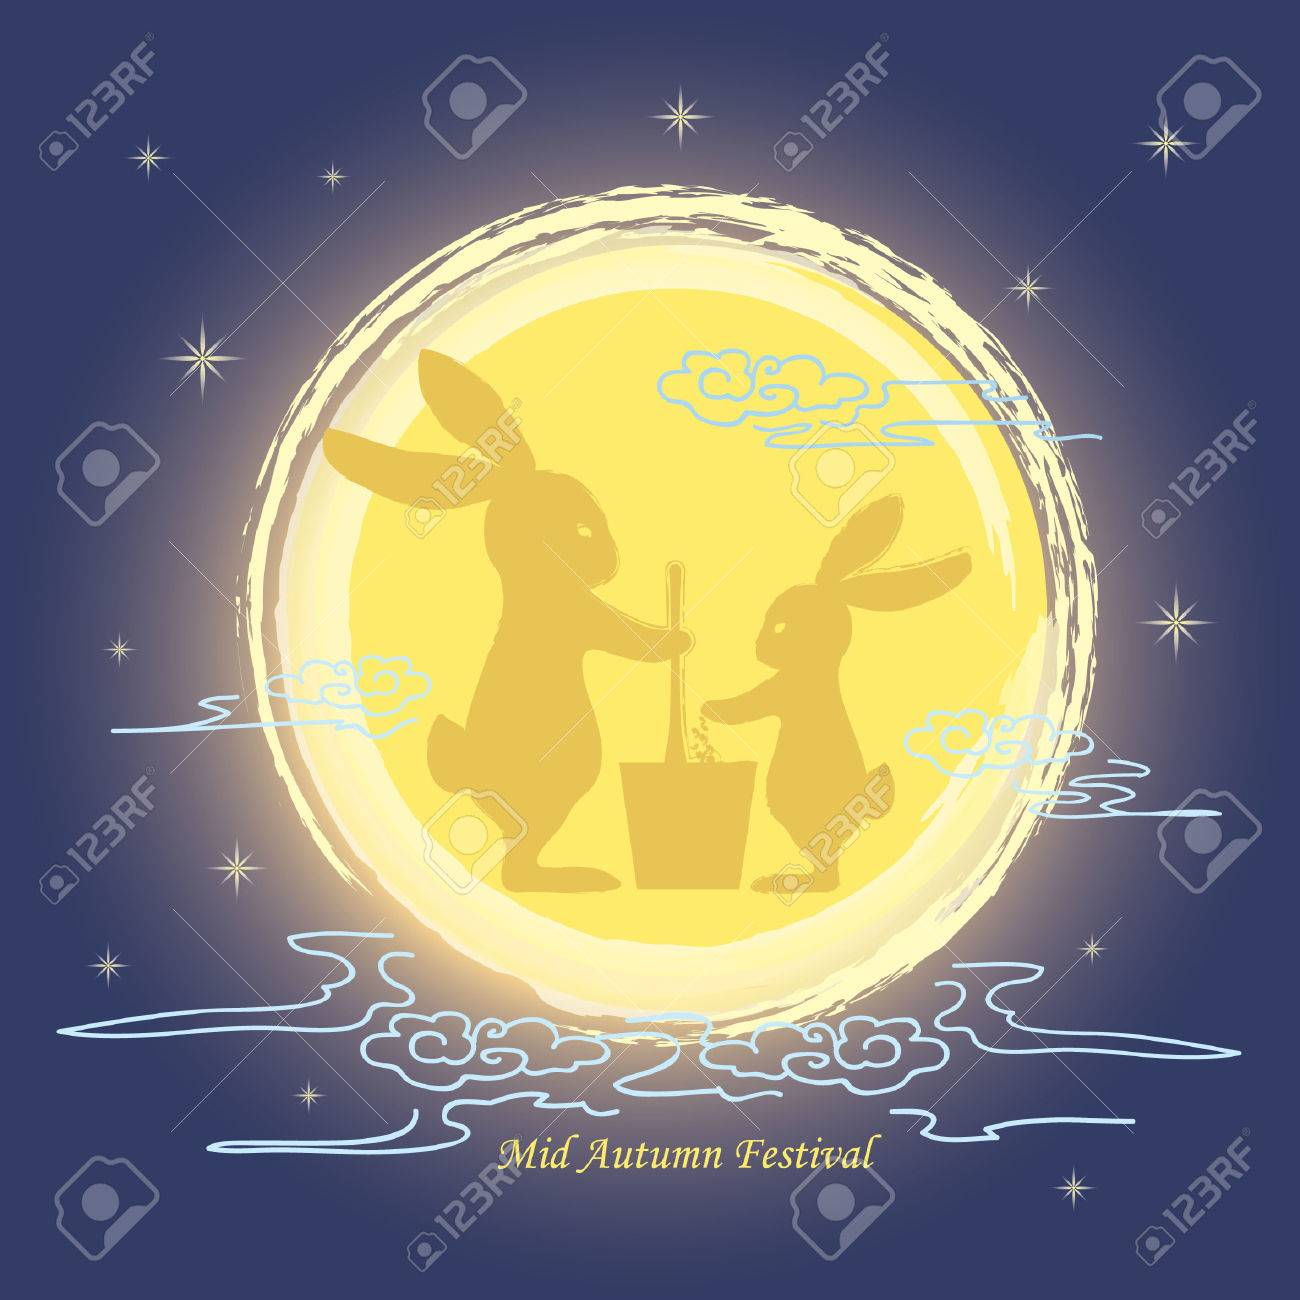 Mid autumn festival greeting with hand drawn full moon and bunny mid autumn festival greeting with hand drawn full moon and bunny silhouette on starry night background m4hsunfo